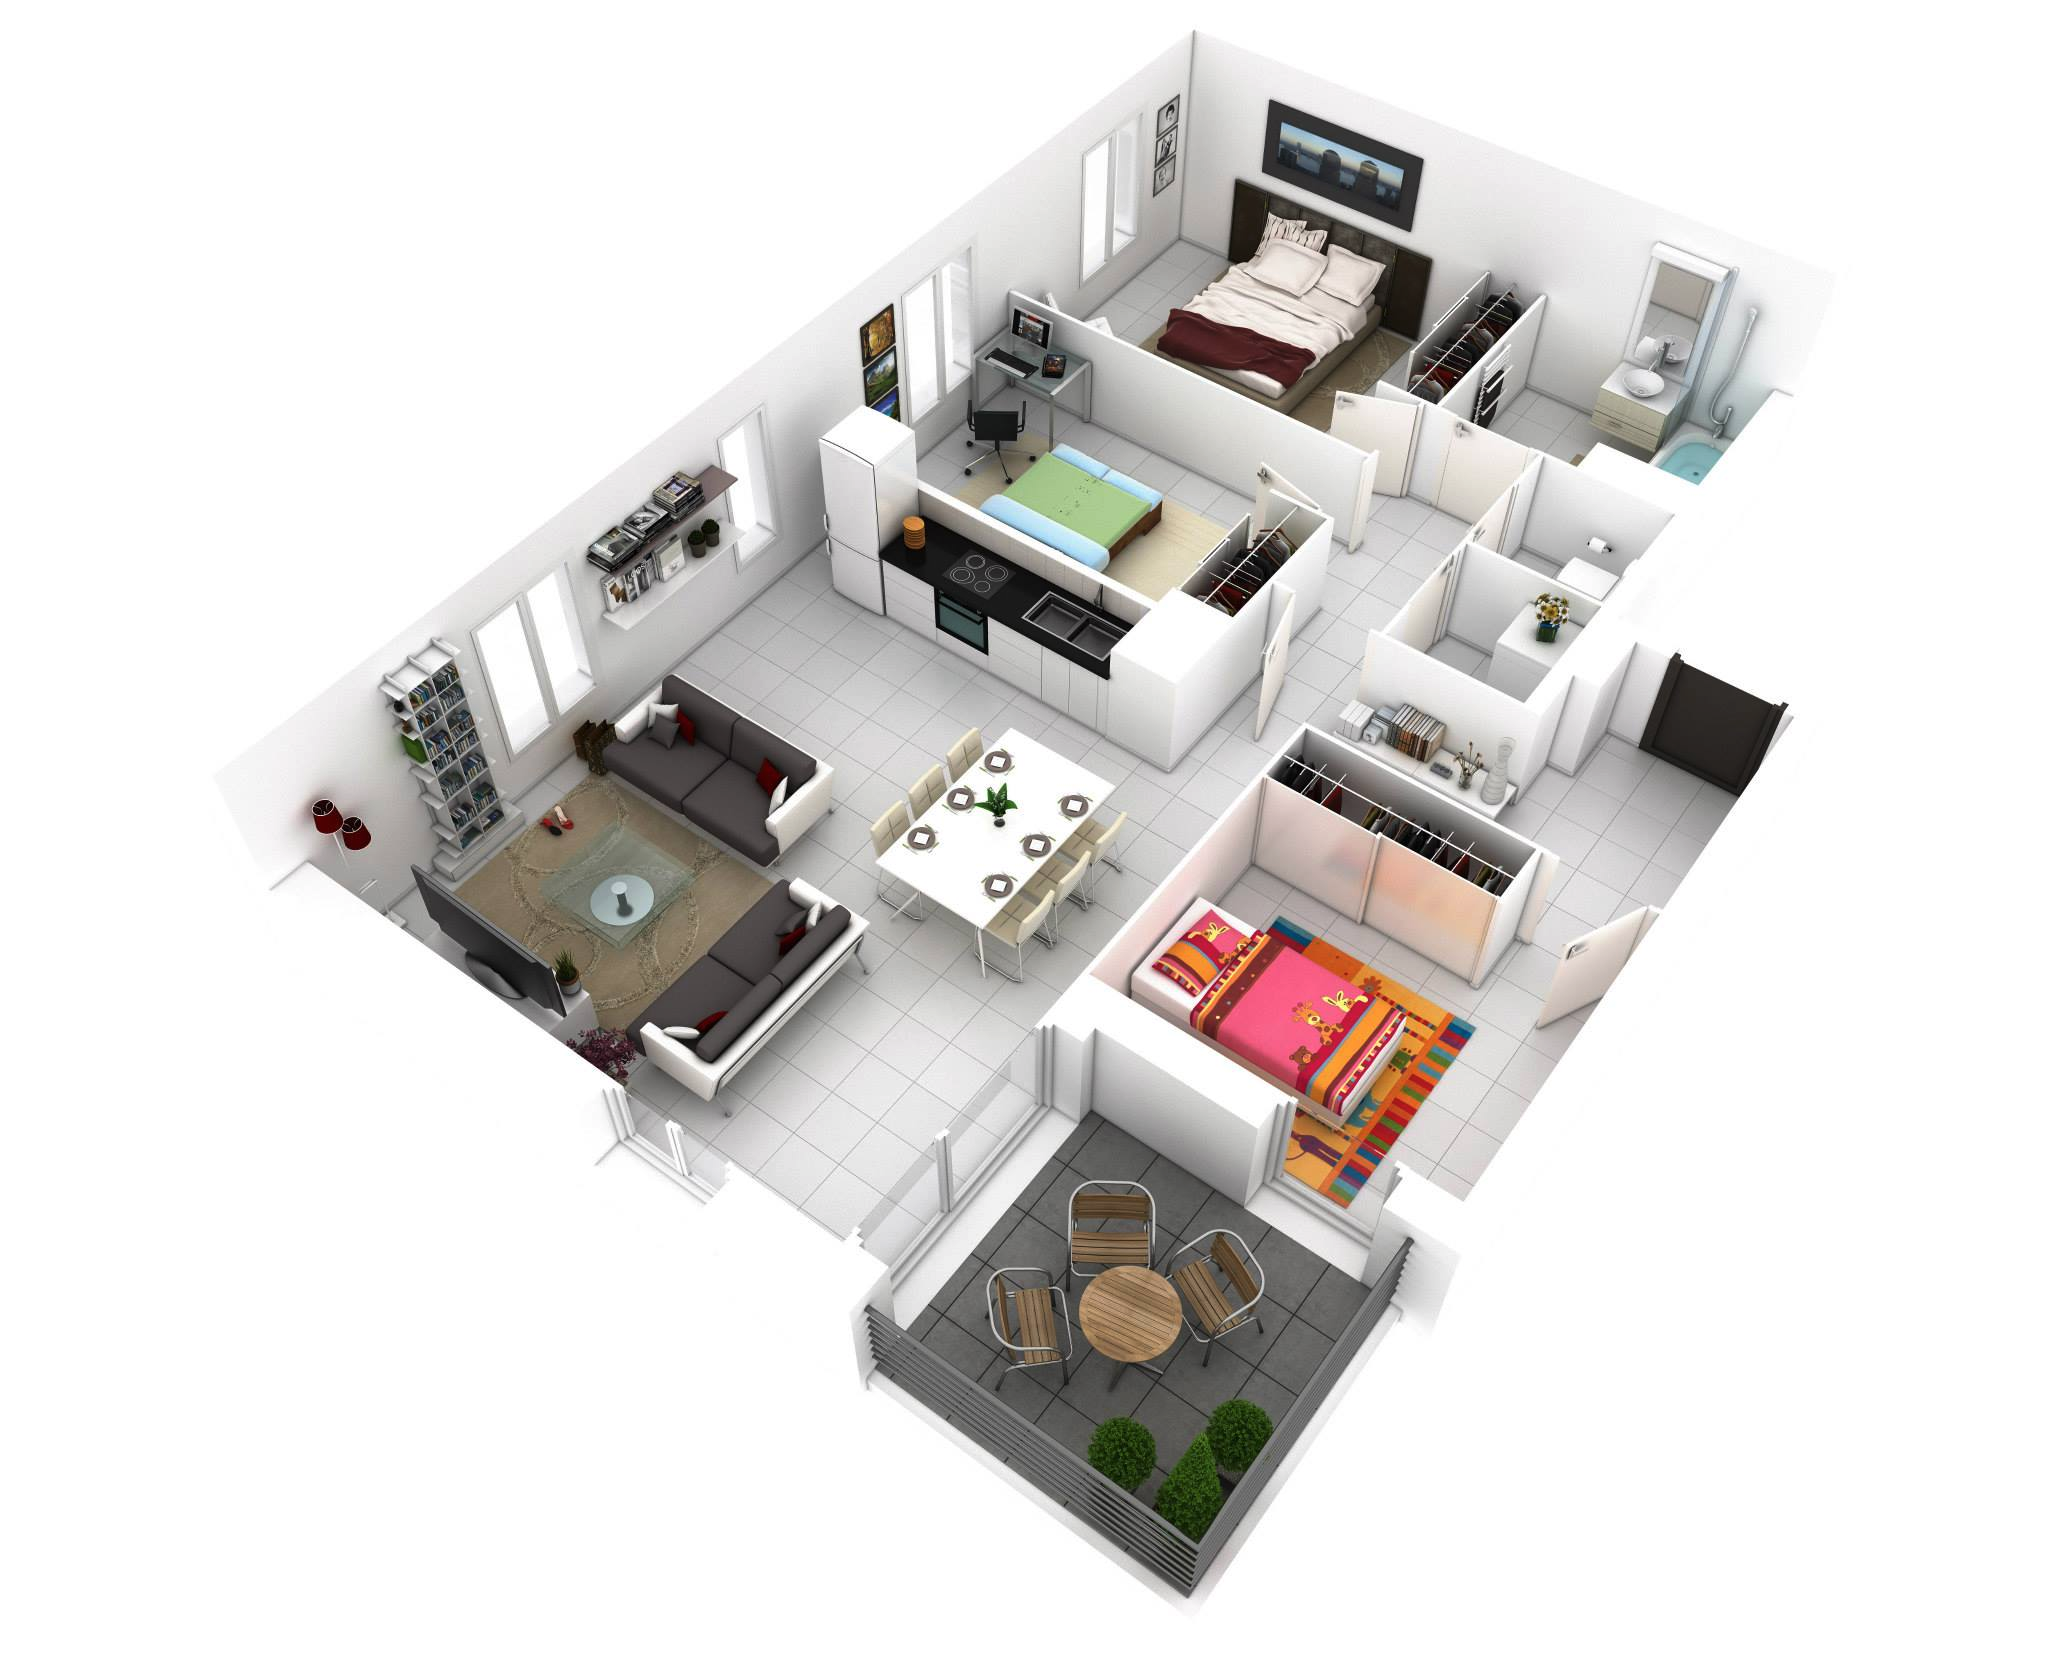 25 More 3 Bedroom 3D Floor Plans Architects Building and House